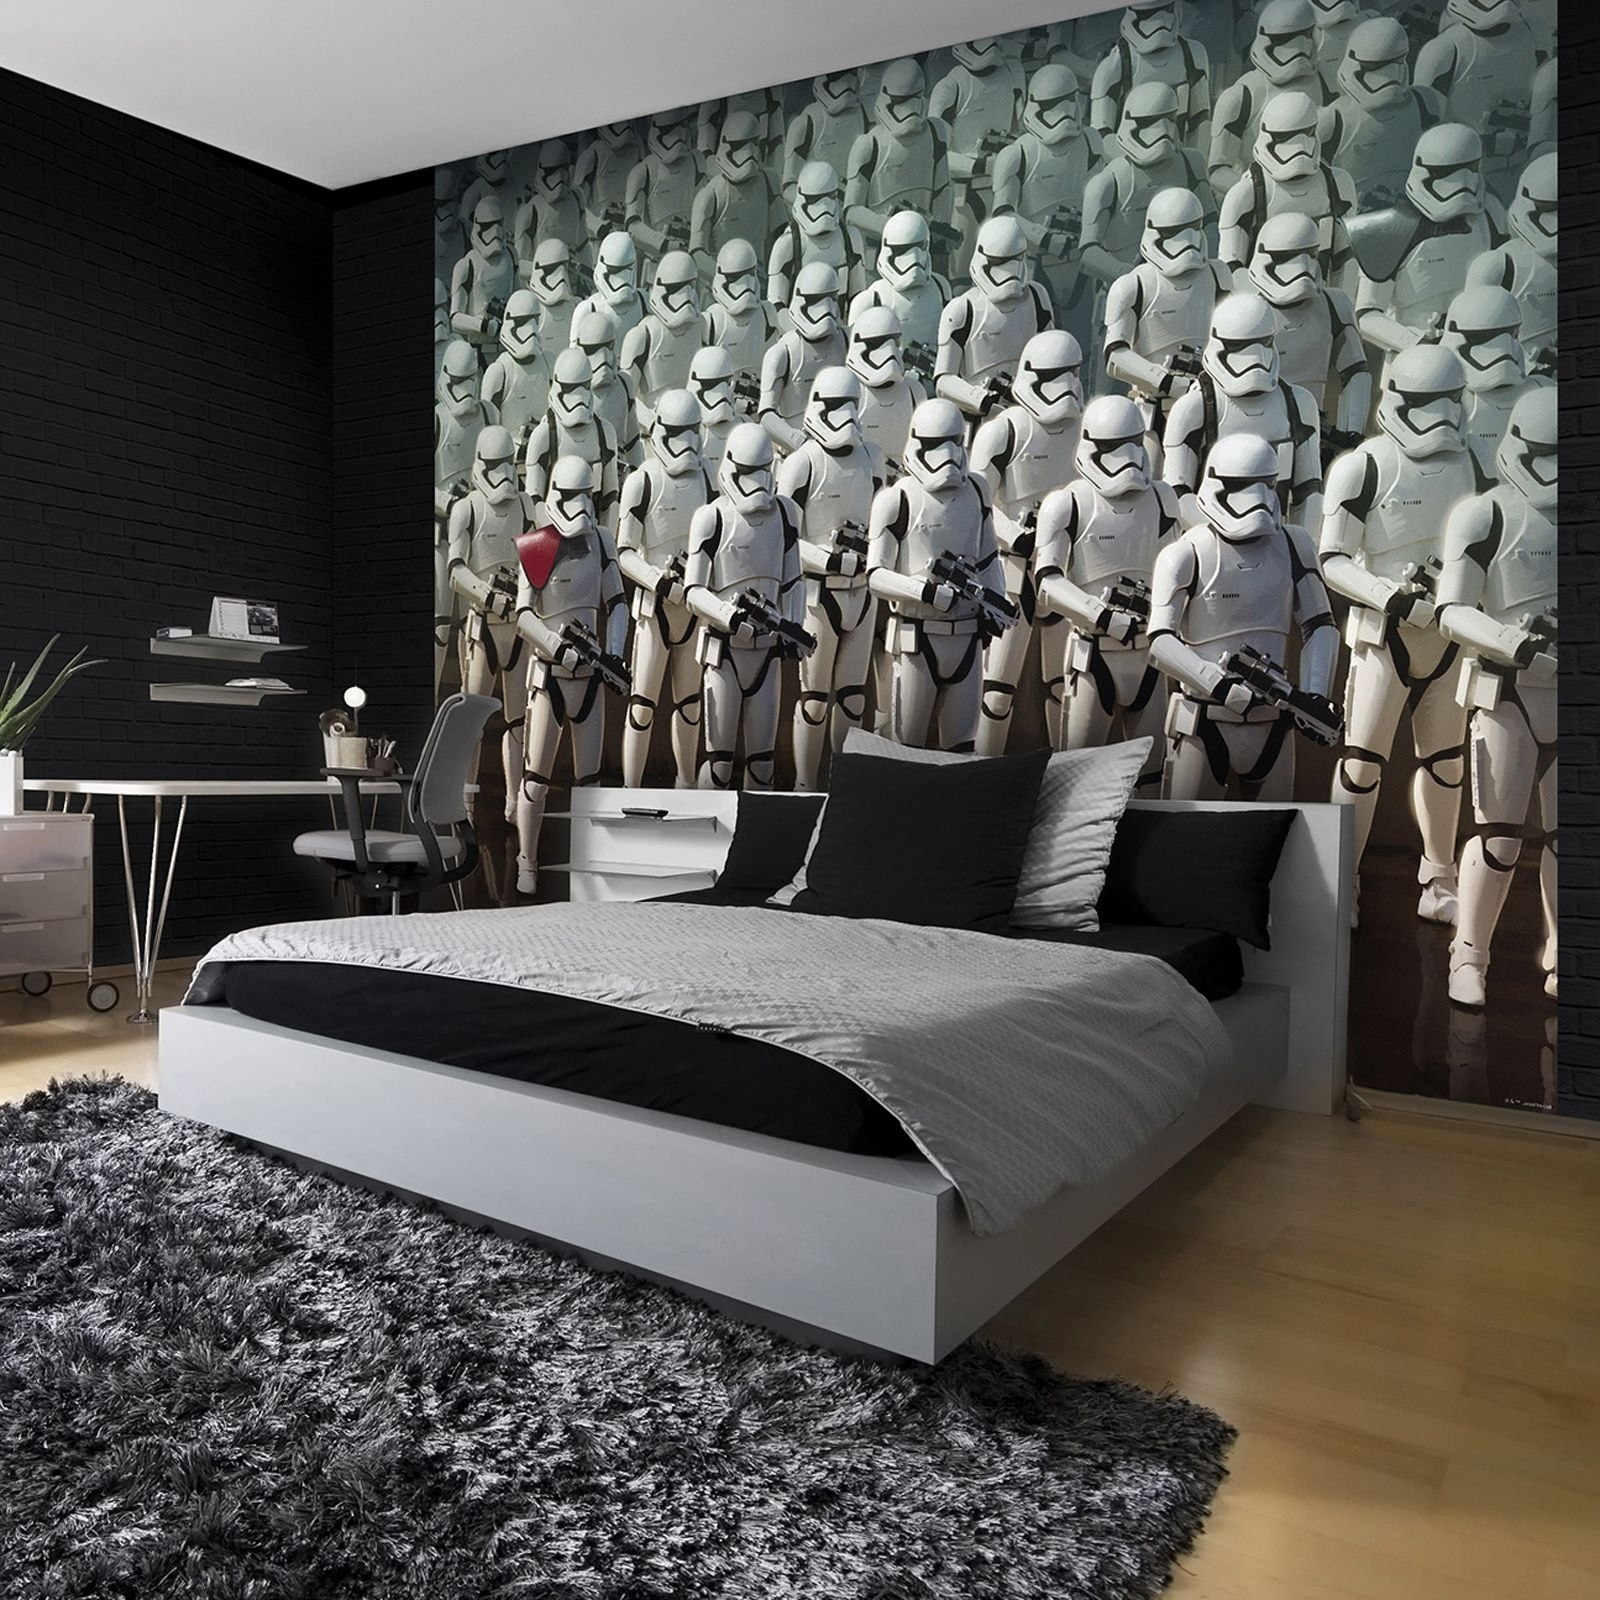 Star Wars Wall Art Bedroom : Andrews Living Arts – Fantastic Room Intended For Most Current Star Wars Wall Art (View 10 of 15)